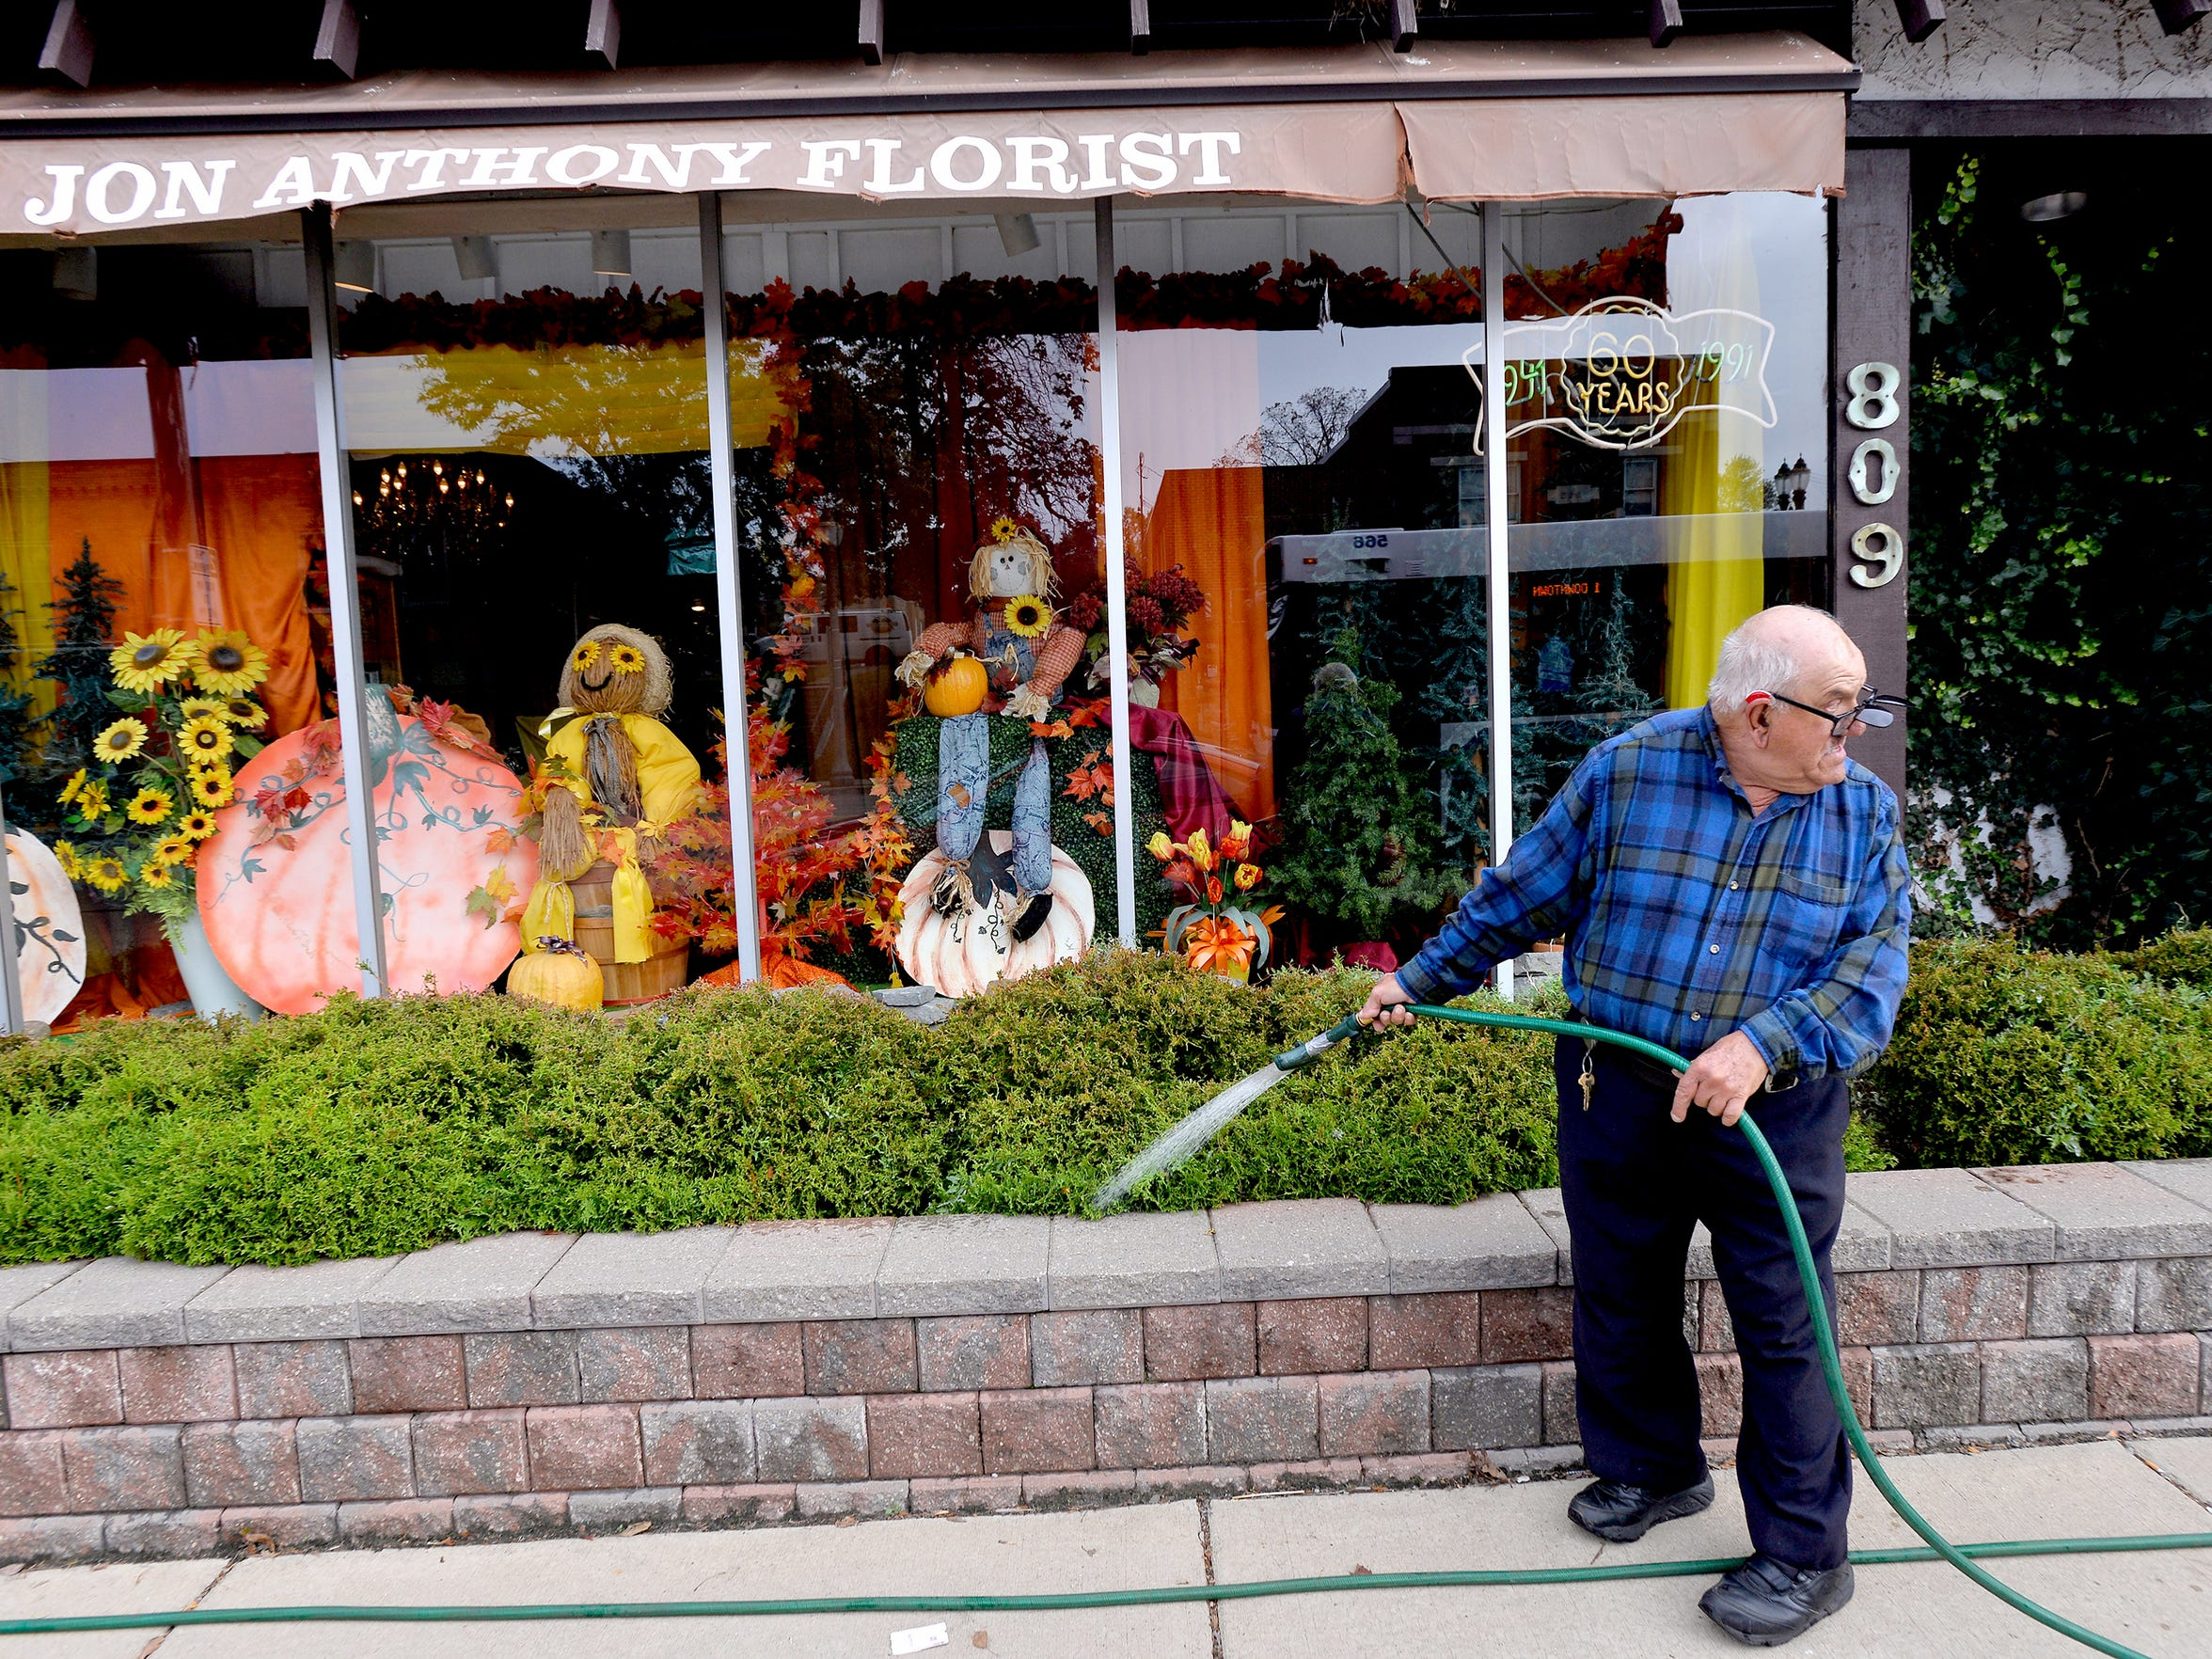 Tony waters plants as he does odd jobs at longtime employer Jon Anthony Florist in Lansing before making his daily walk to hang out at  Lansing's Fire Station One.